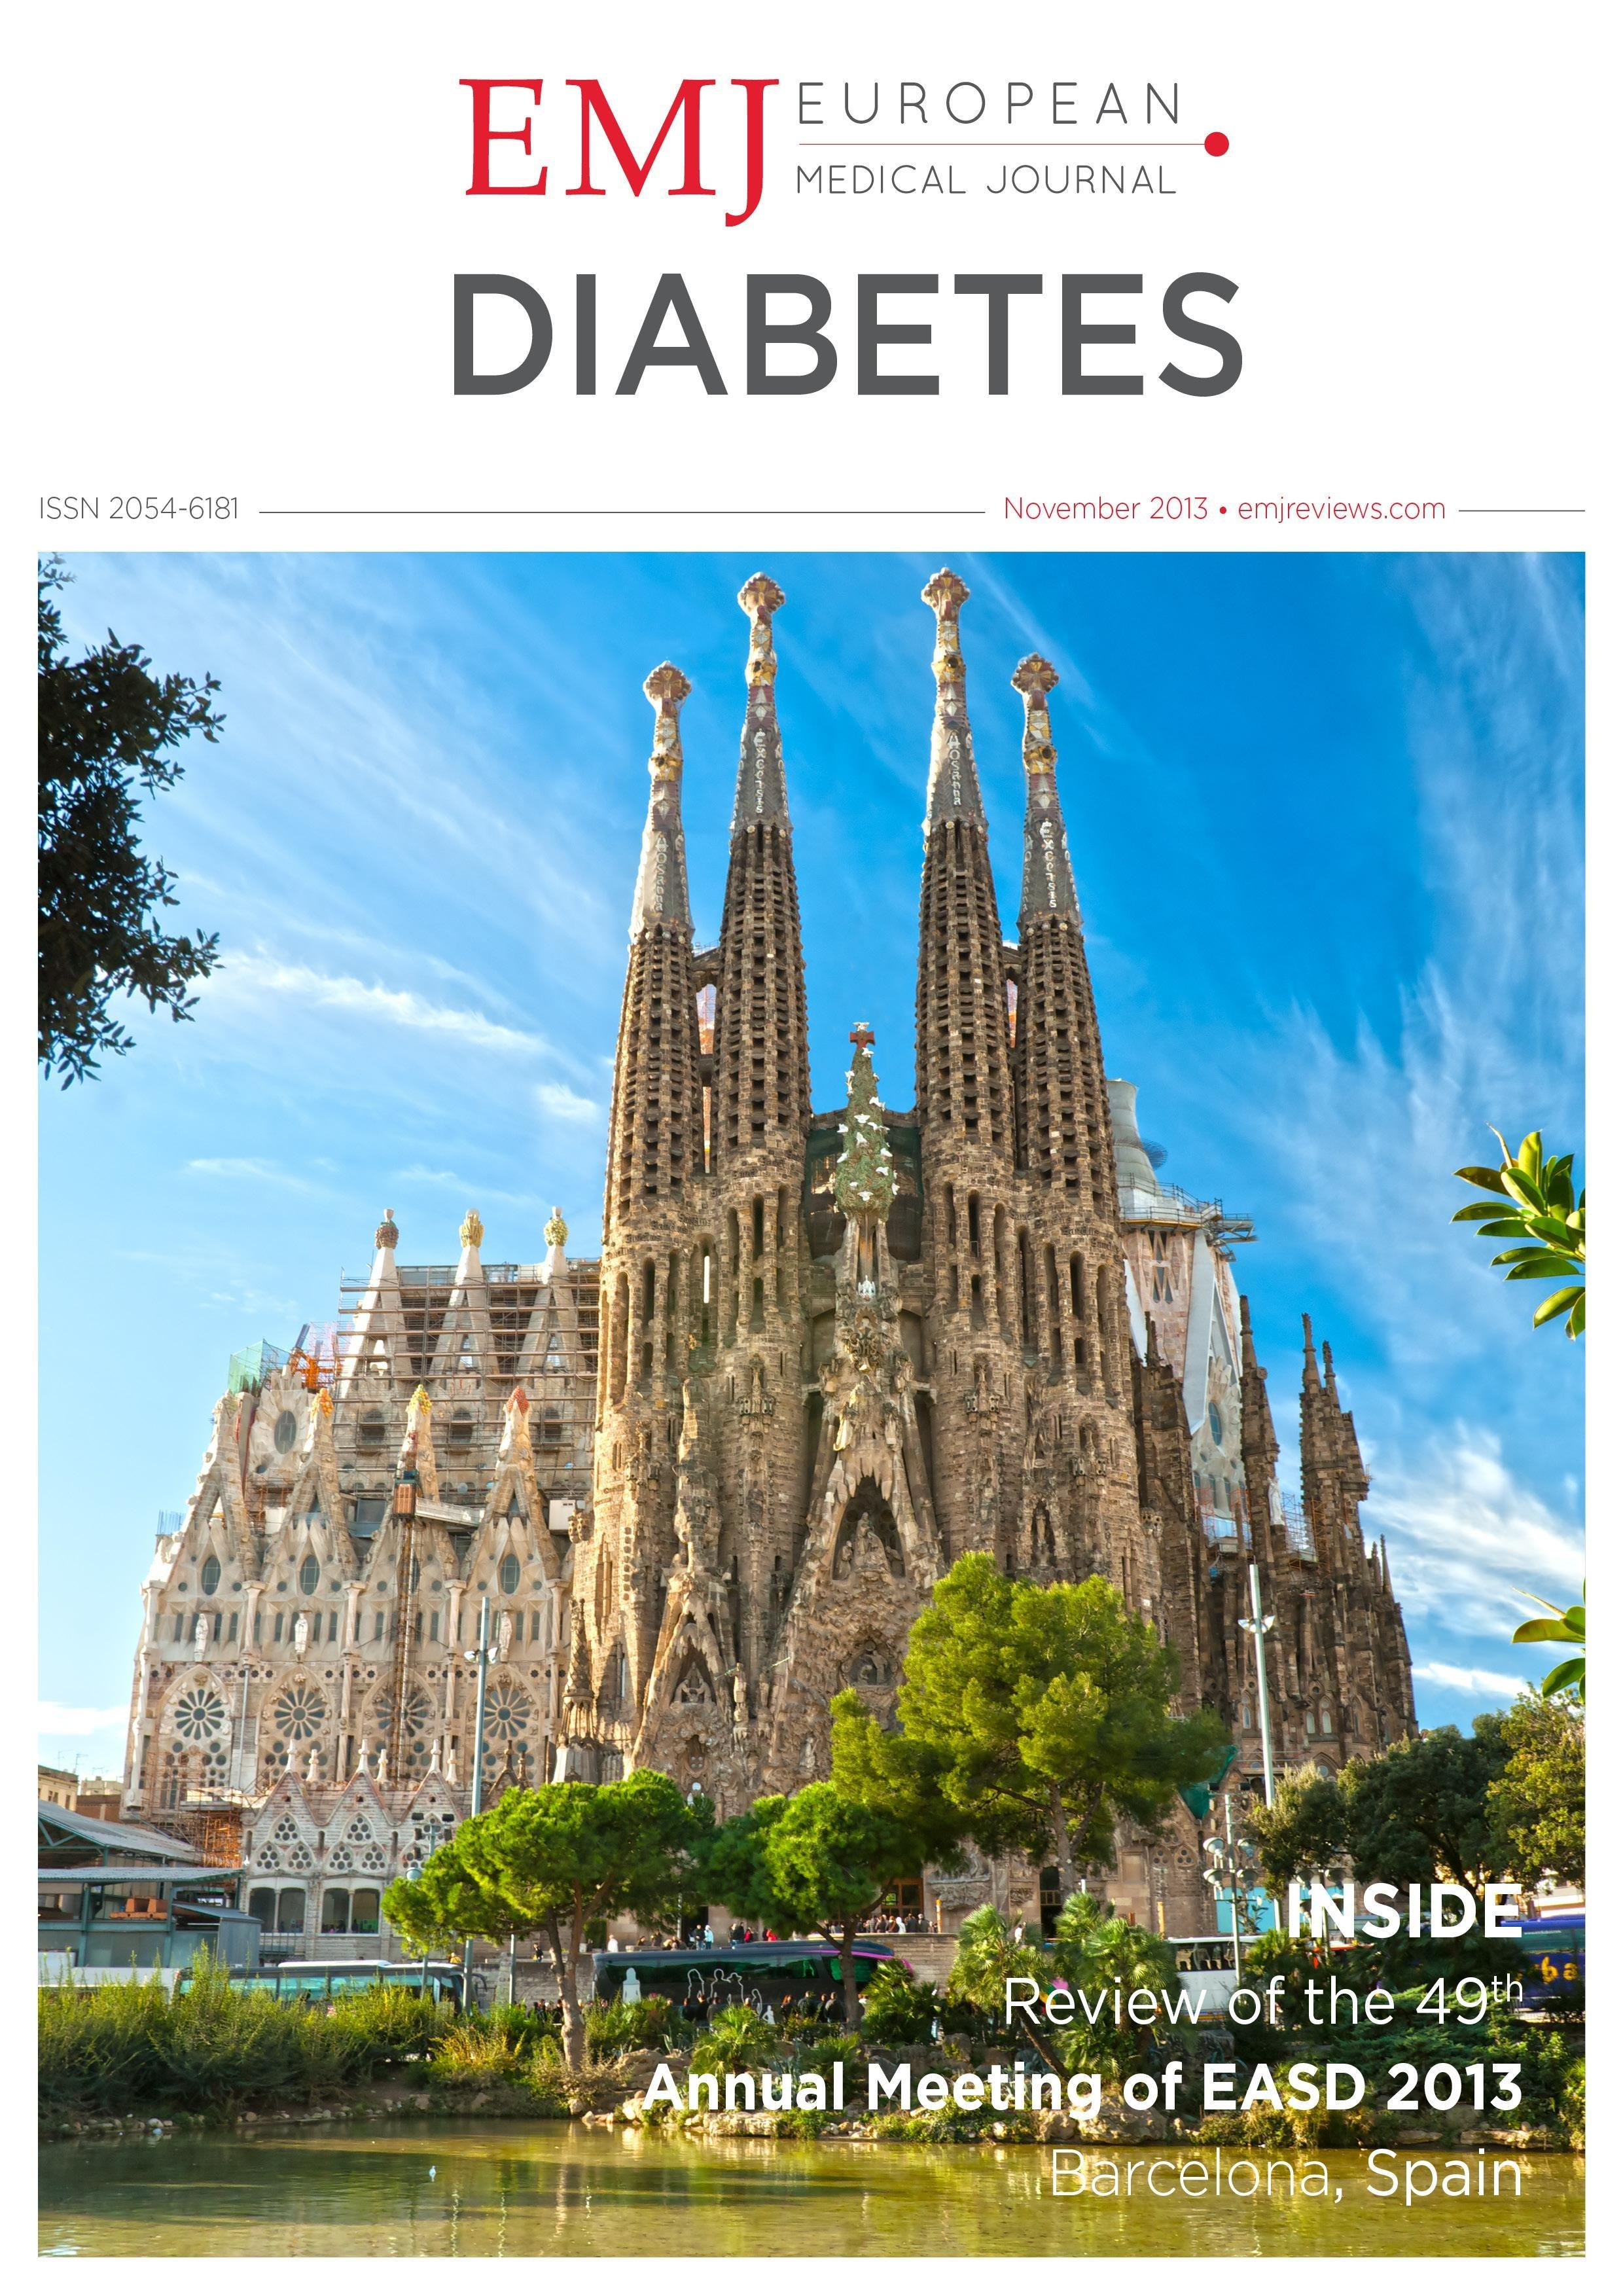 Diabetes Mellitus And Periodontitis – Signs Of A Bidirectional Relationship